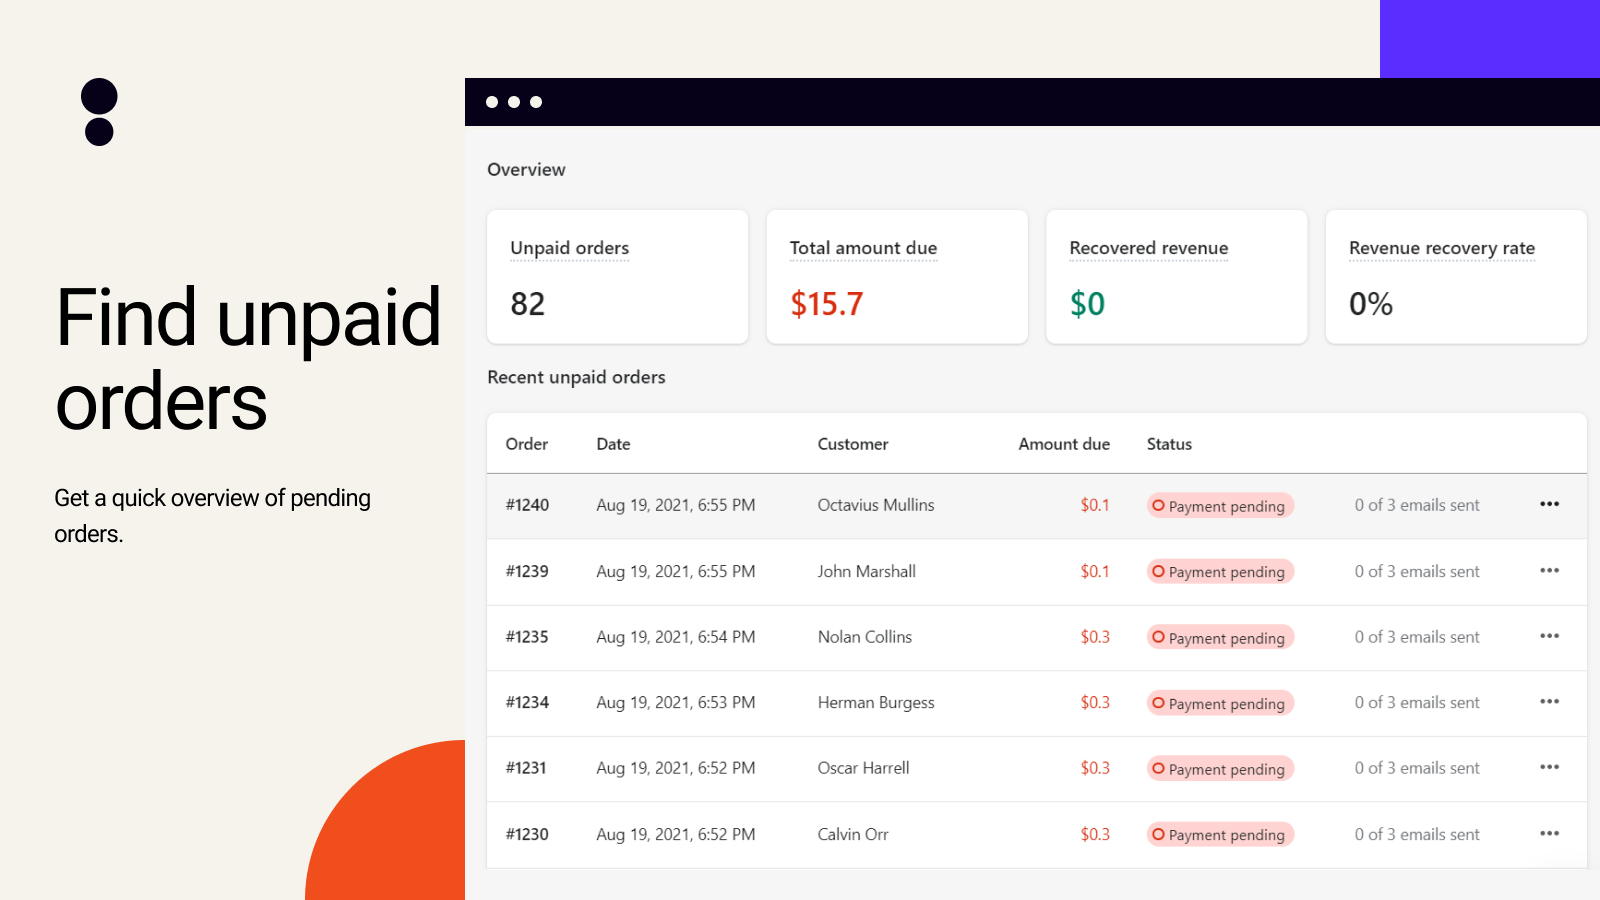 Overview of the unpaid orders in Payster dashboard